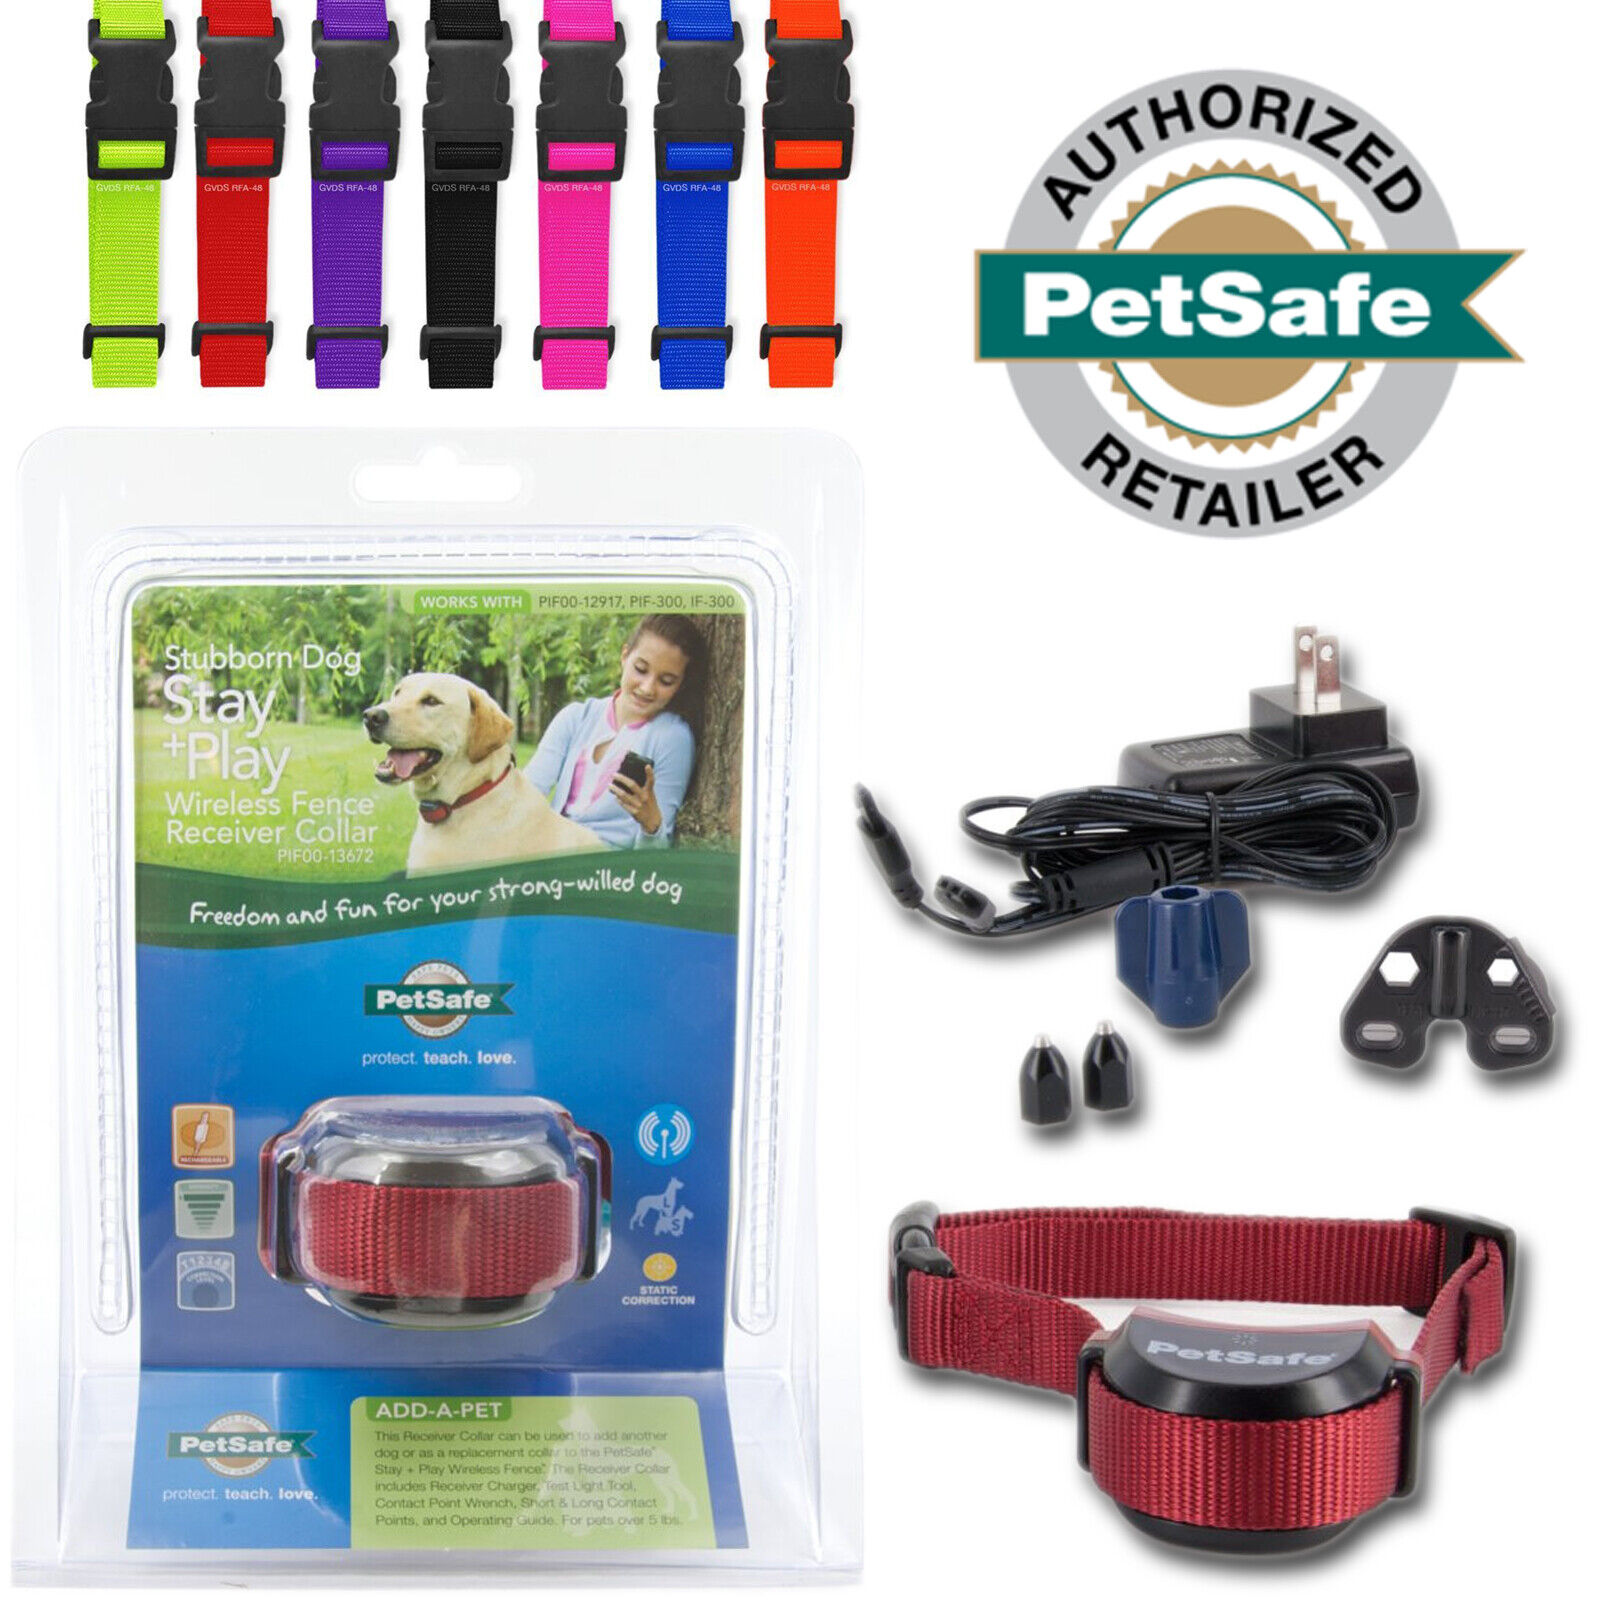 petsafe-stubborn-wireless-fence-dog-receiver-collar-rechargeable-stayplay